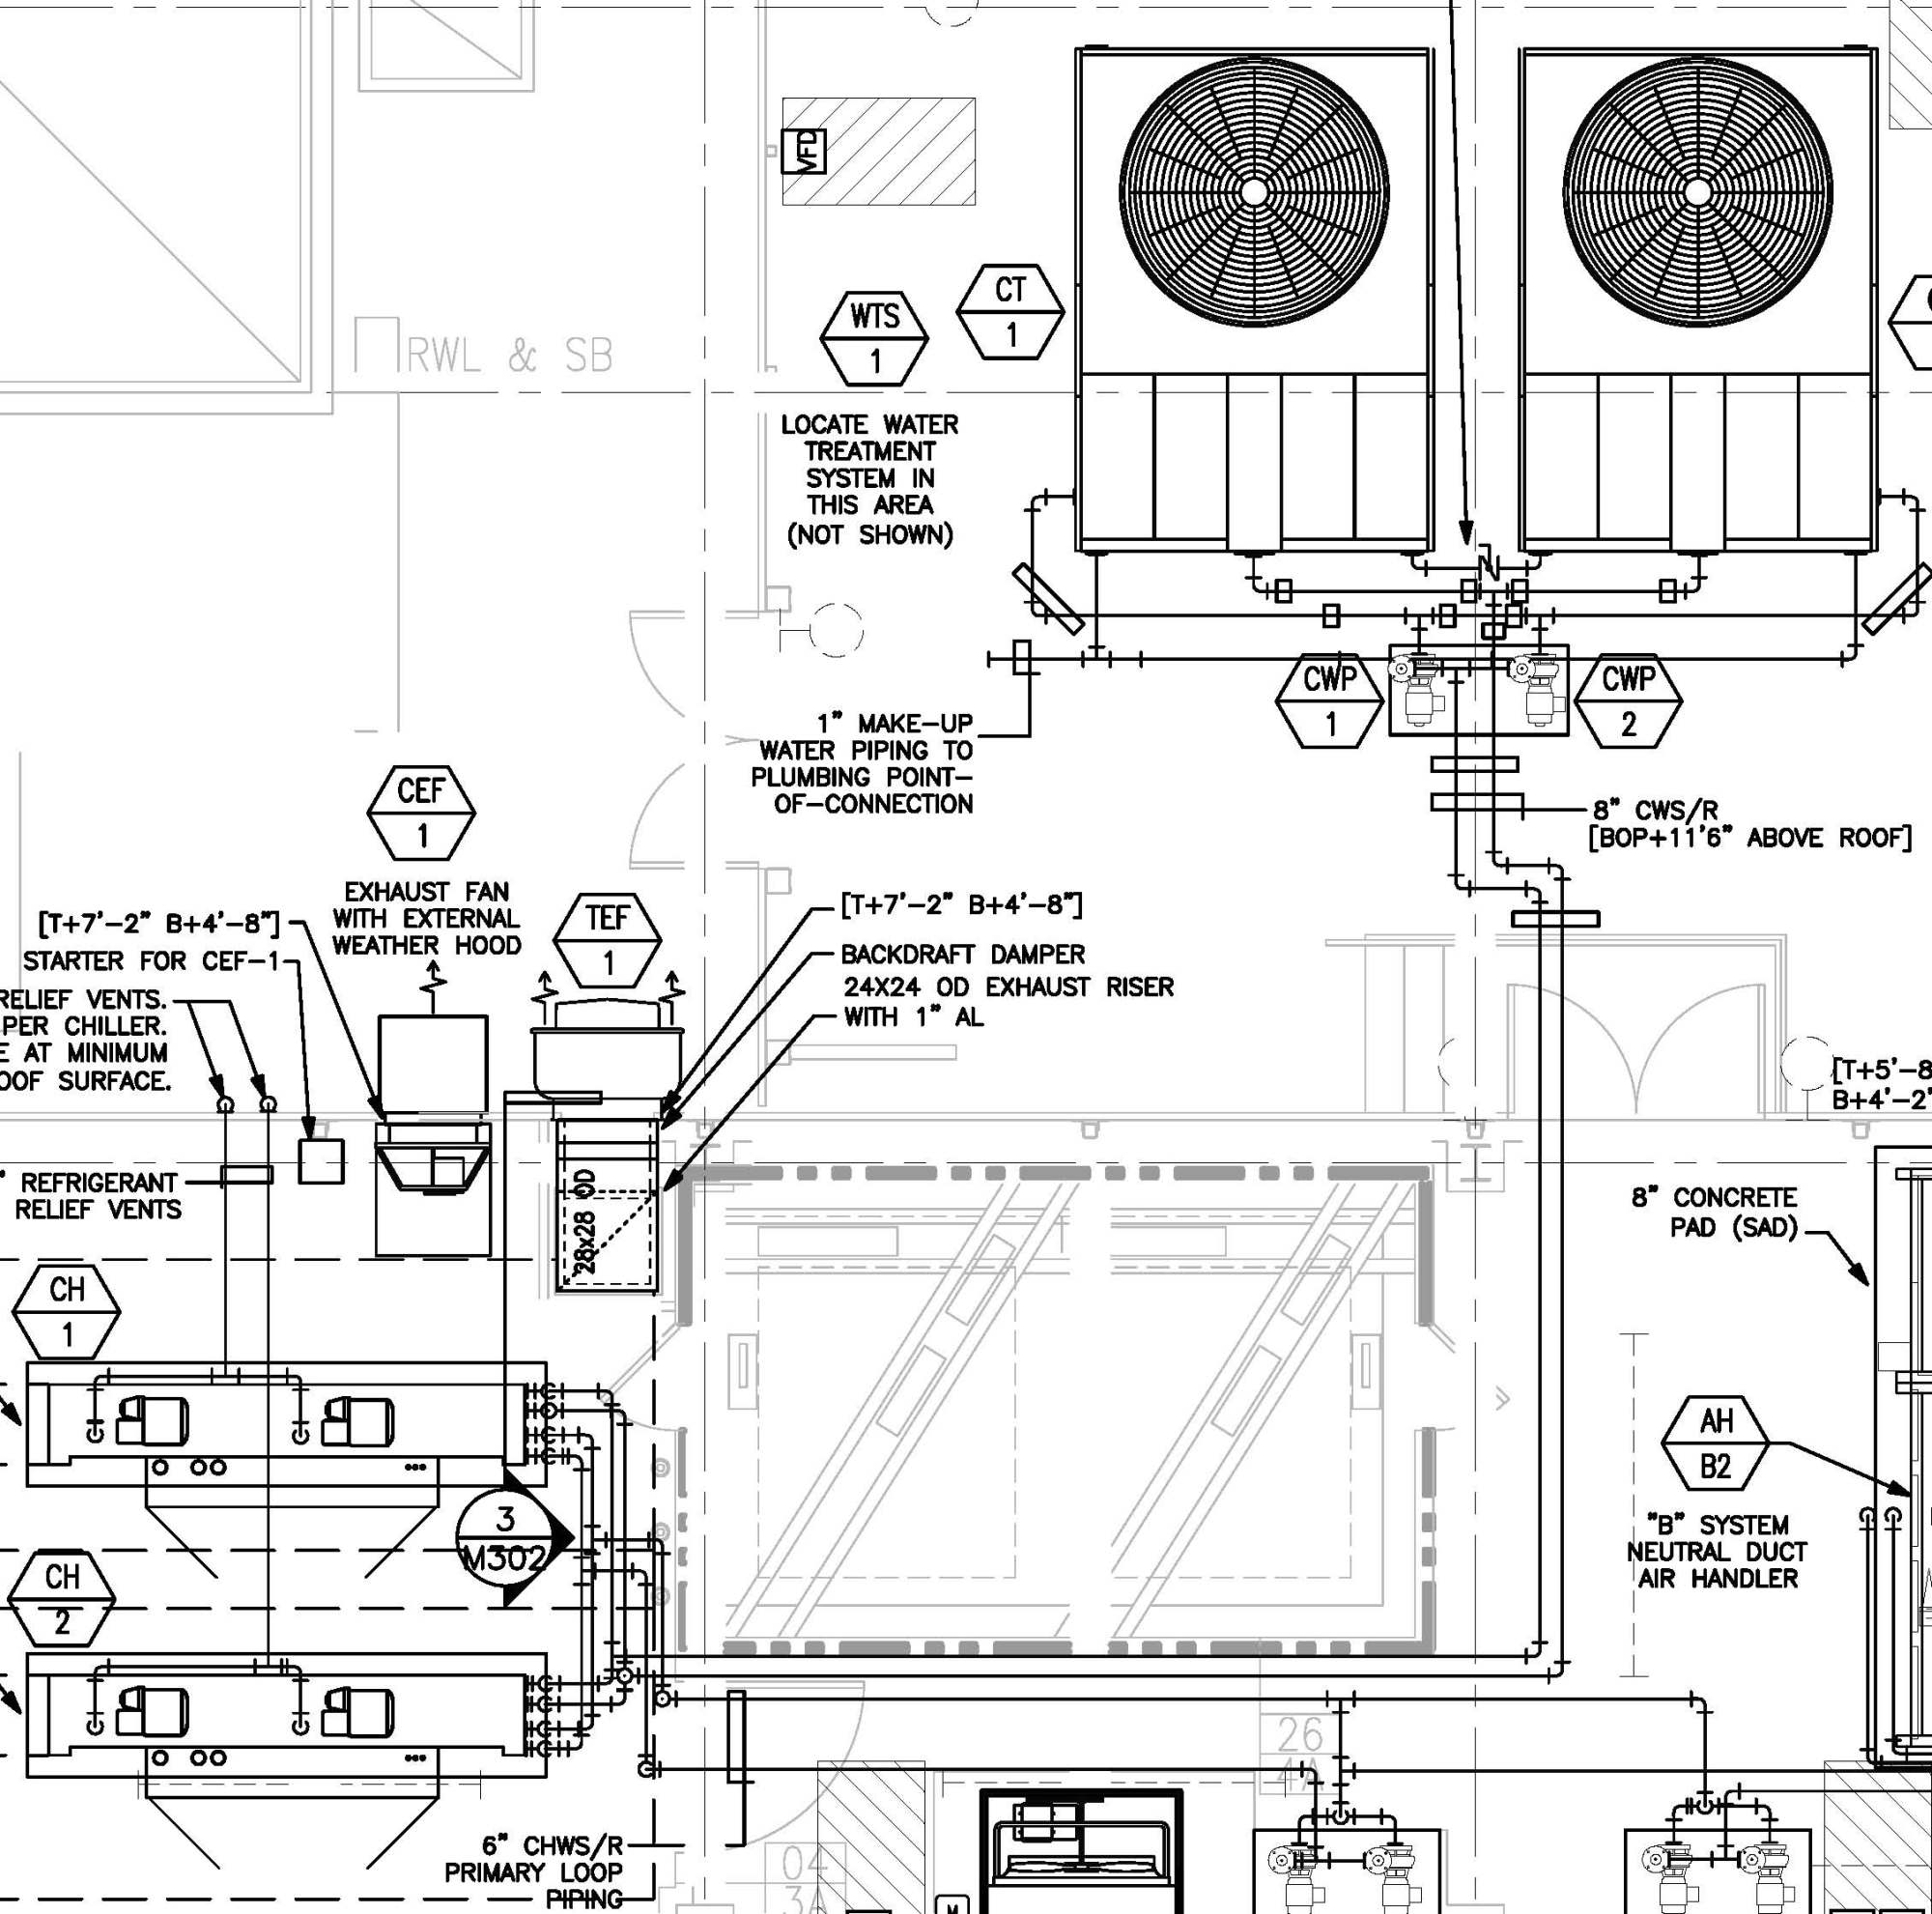 hight resolution of chiller wiring diagram experts of wiring diagram u2022 rh evilcloud co uk